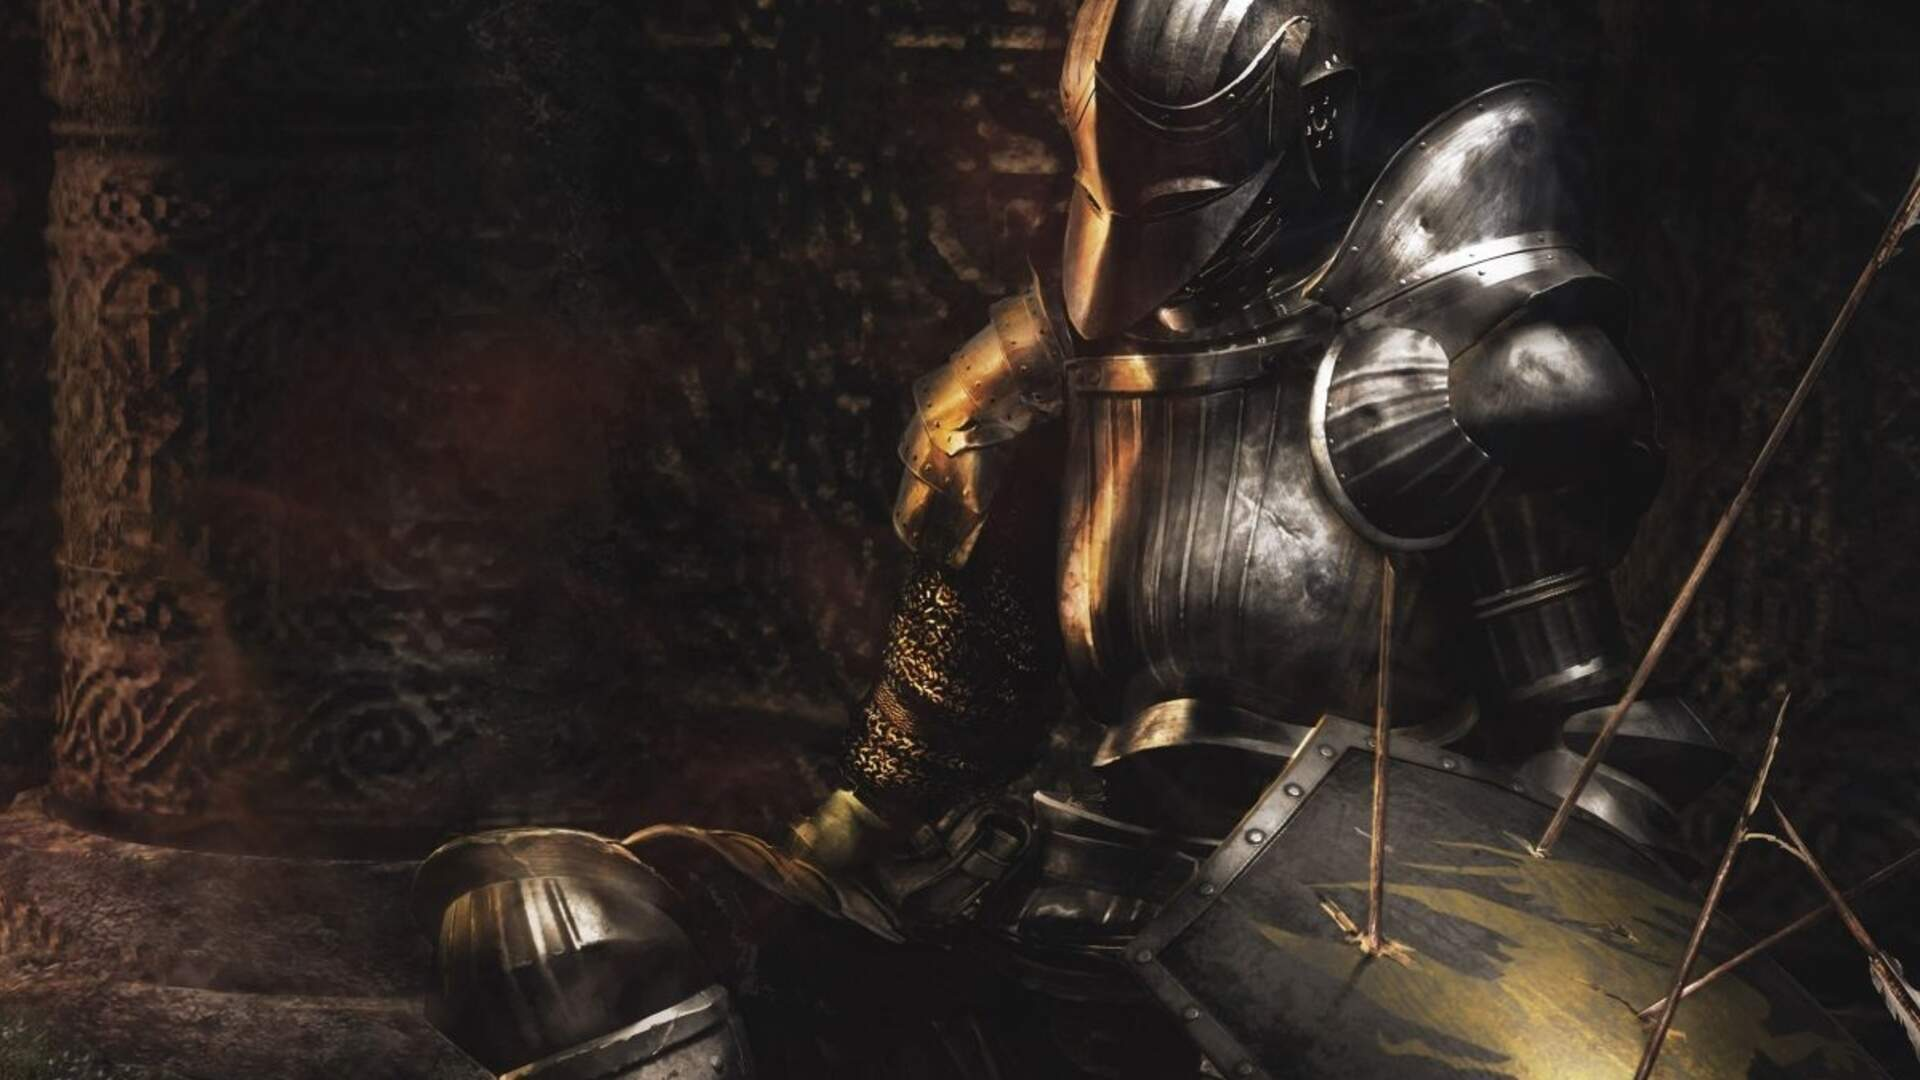 Demon's Souls Remake Confirmed For PS5, Developed by Bluepoint